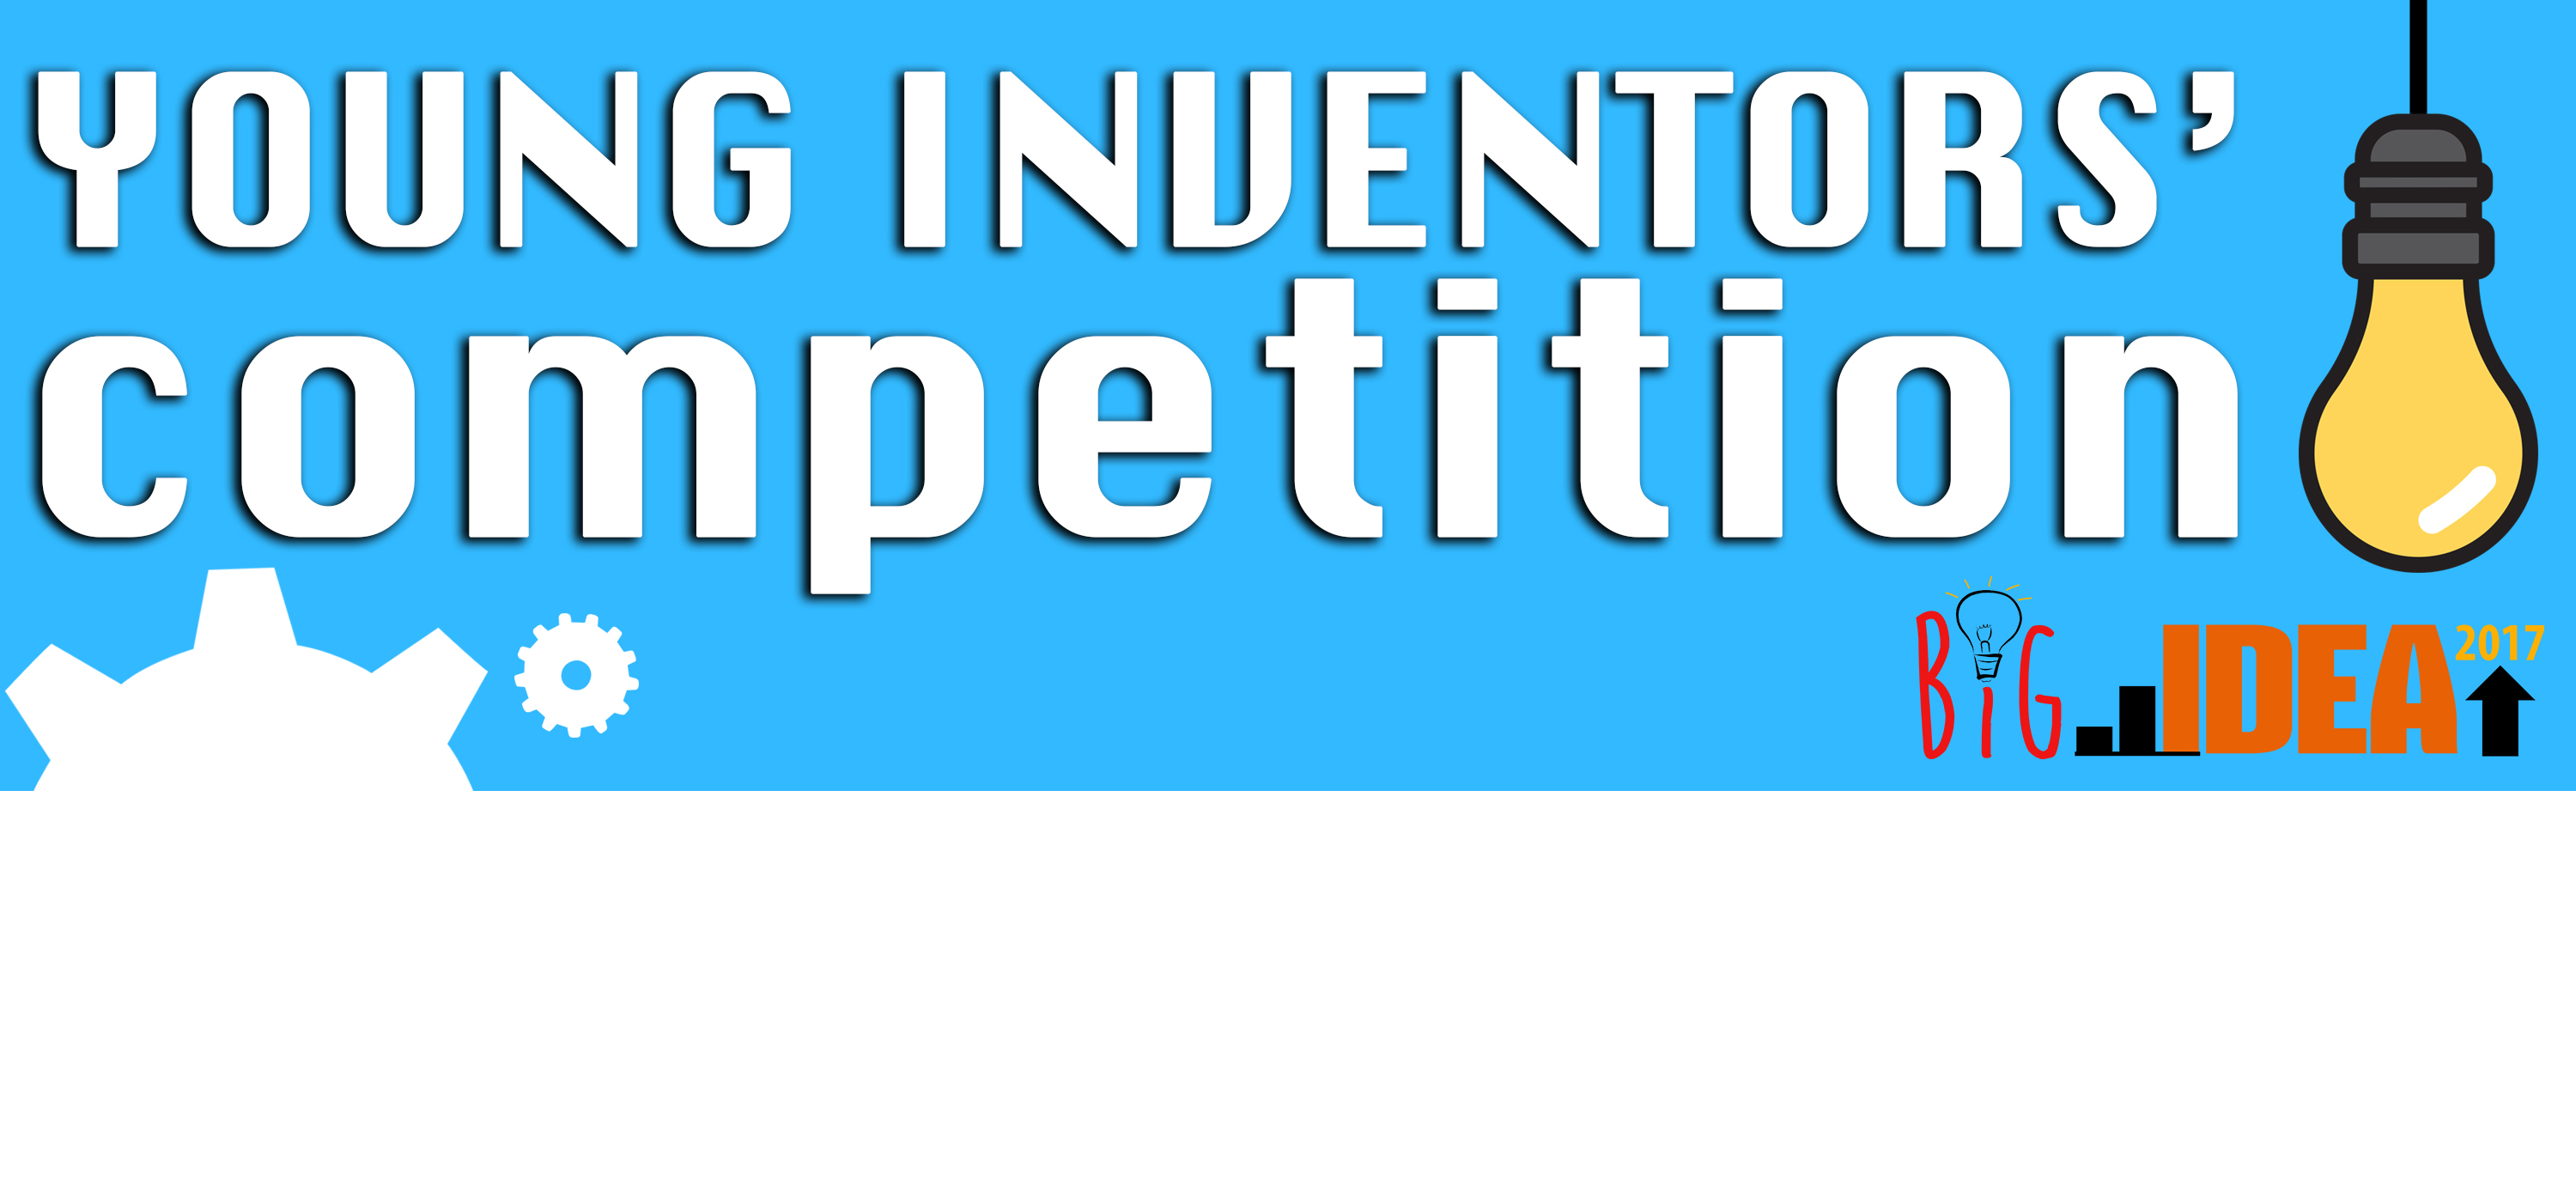 Young Inventors' Competition